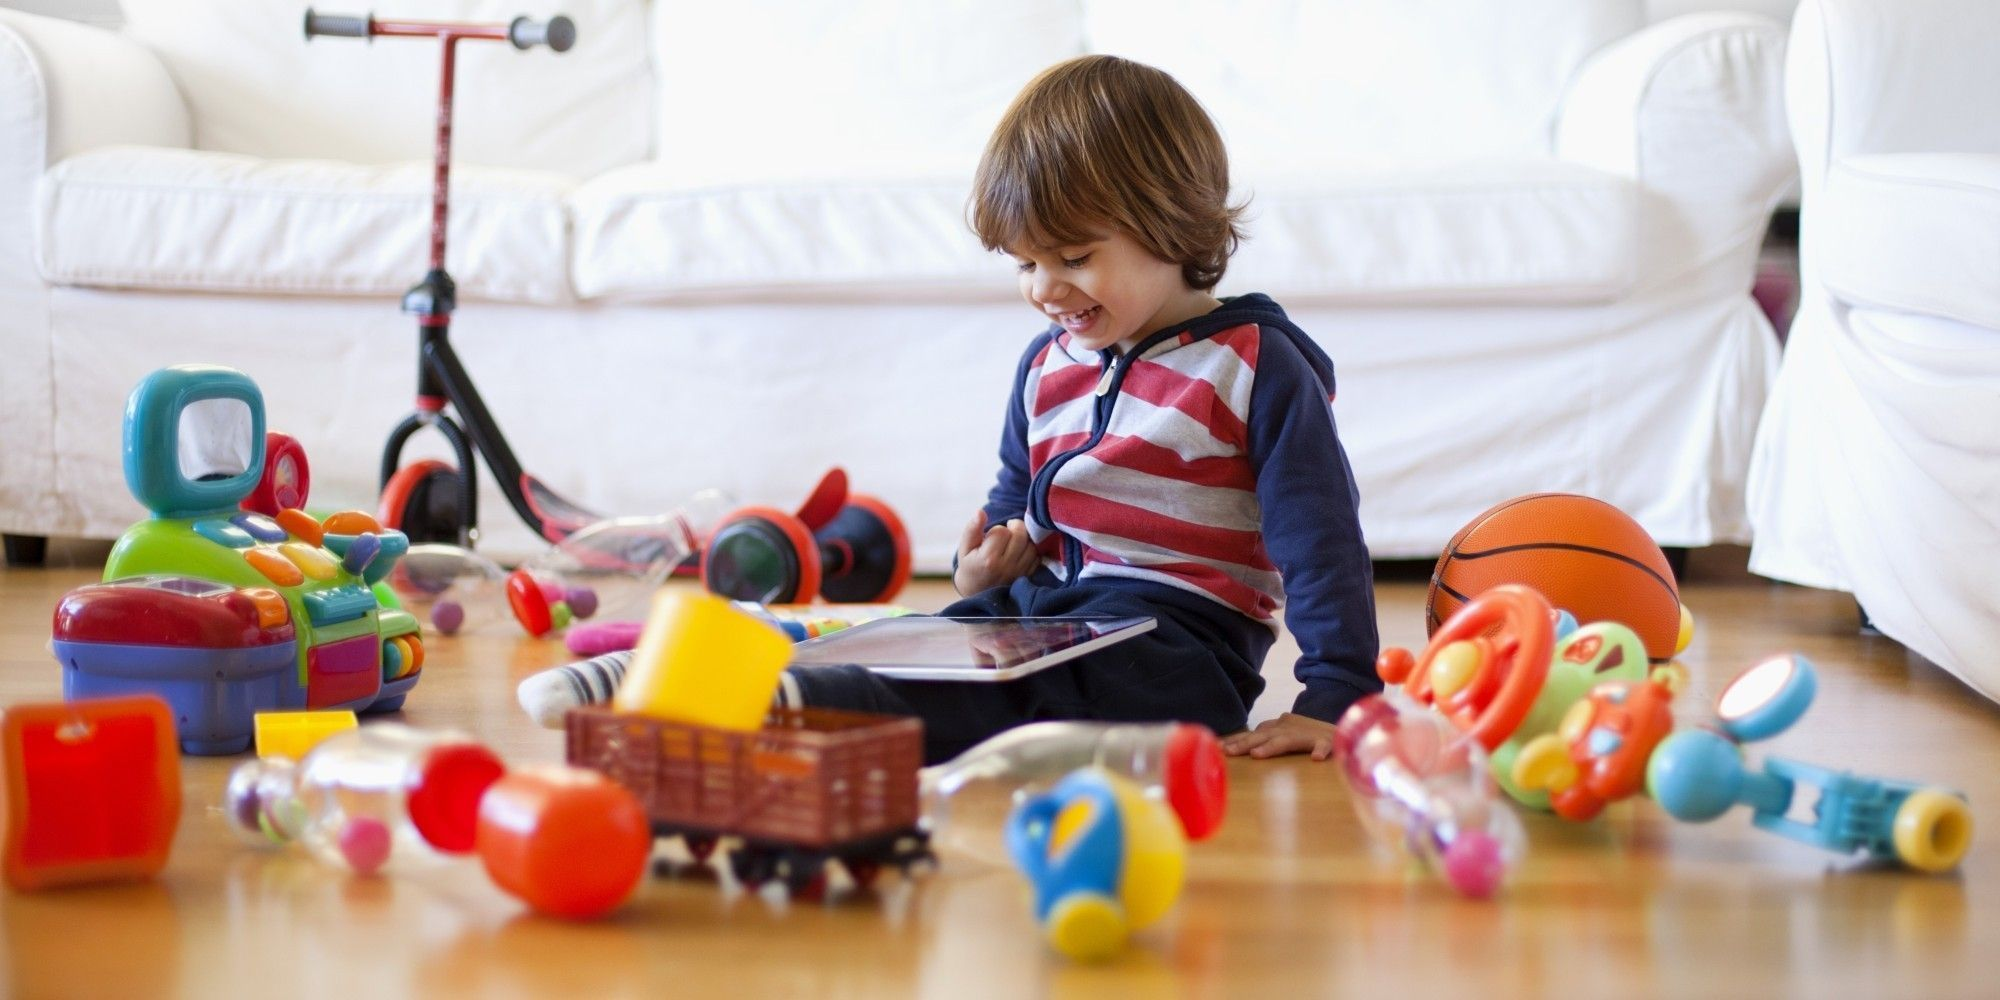 Kid playing with toys